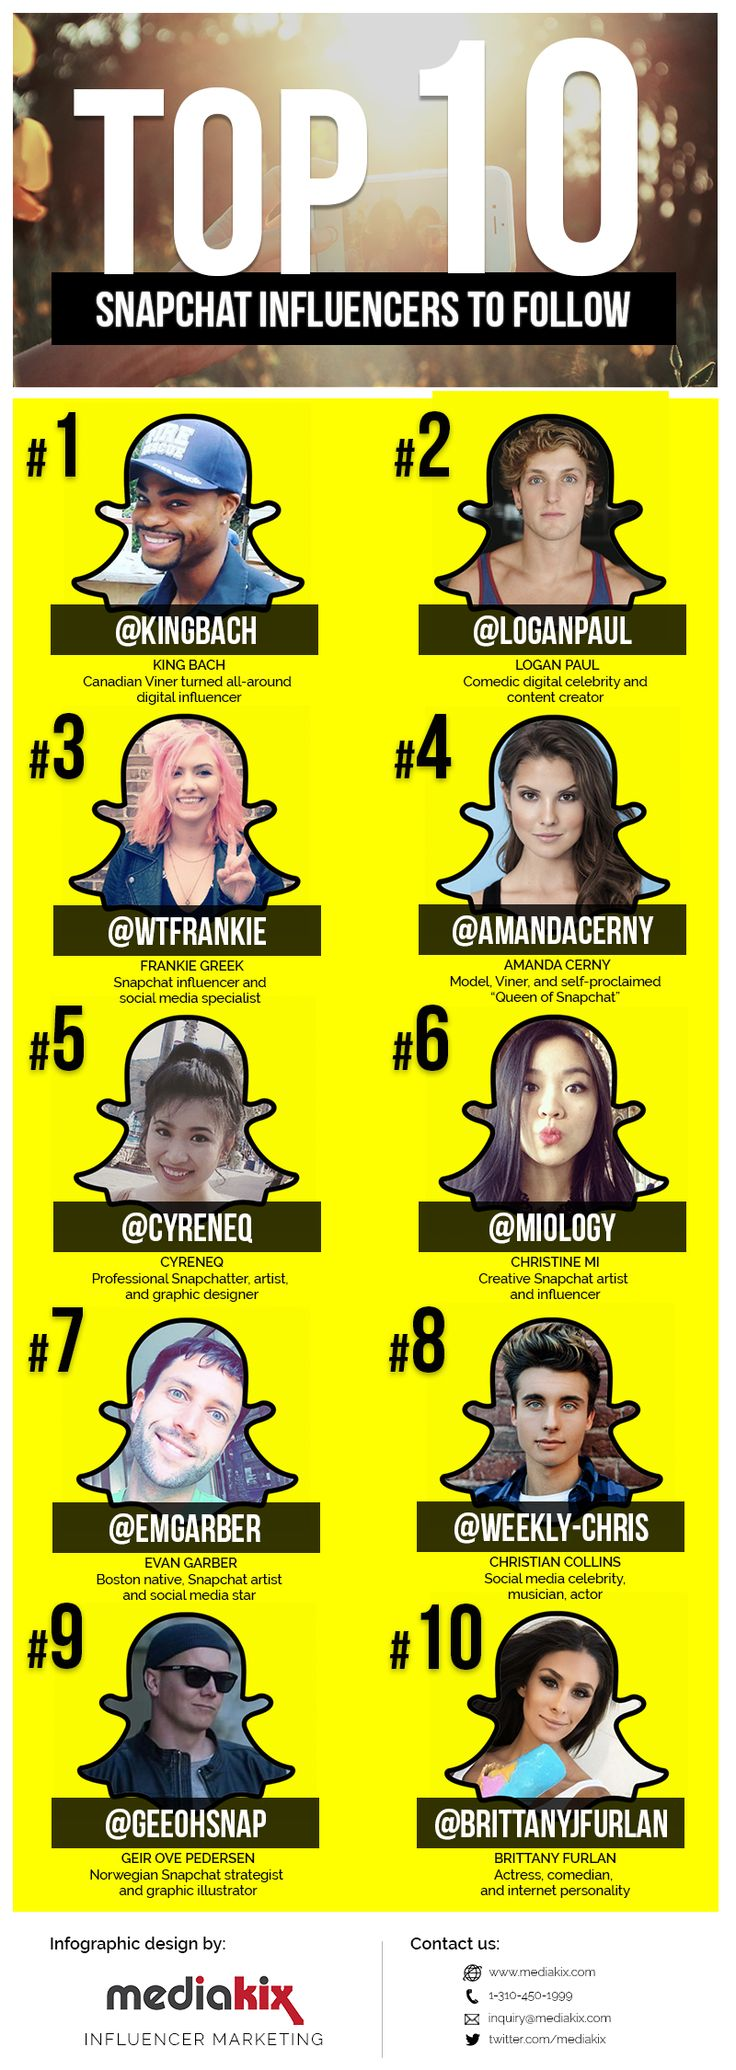 10 Top Snapchat Influencers